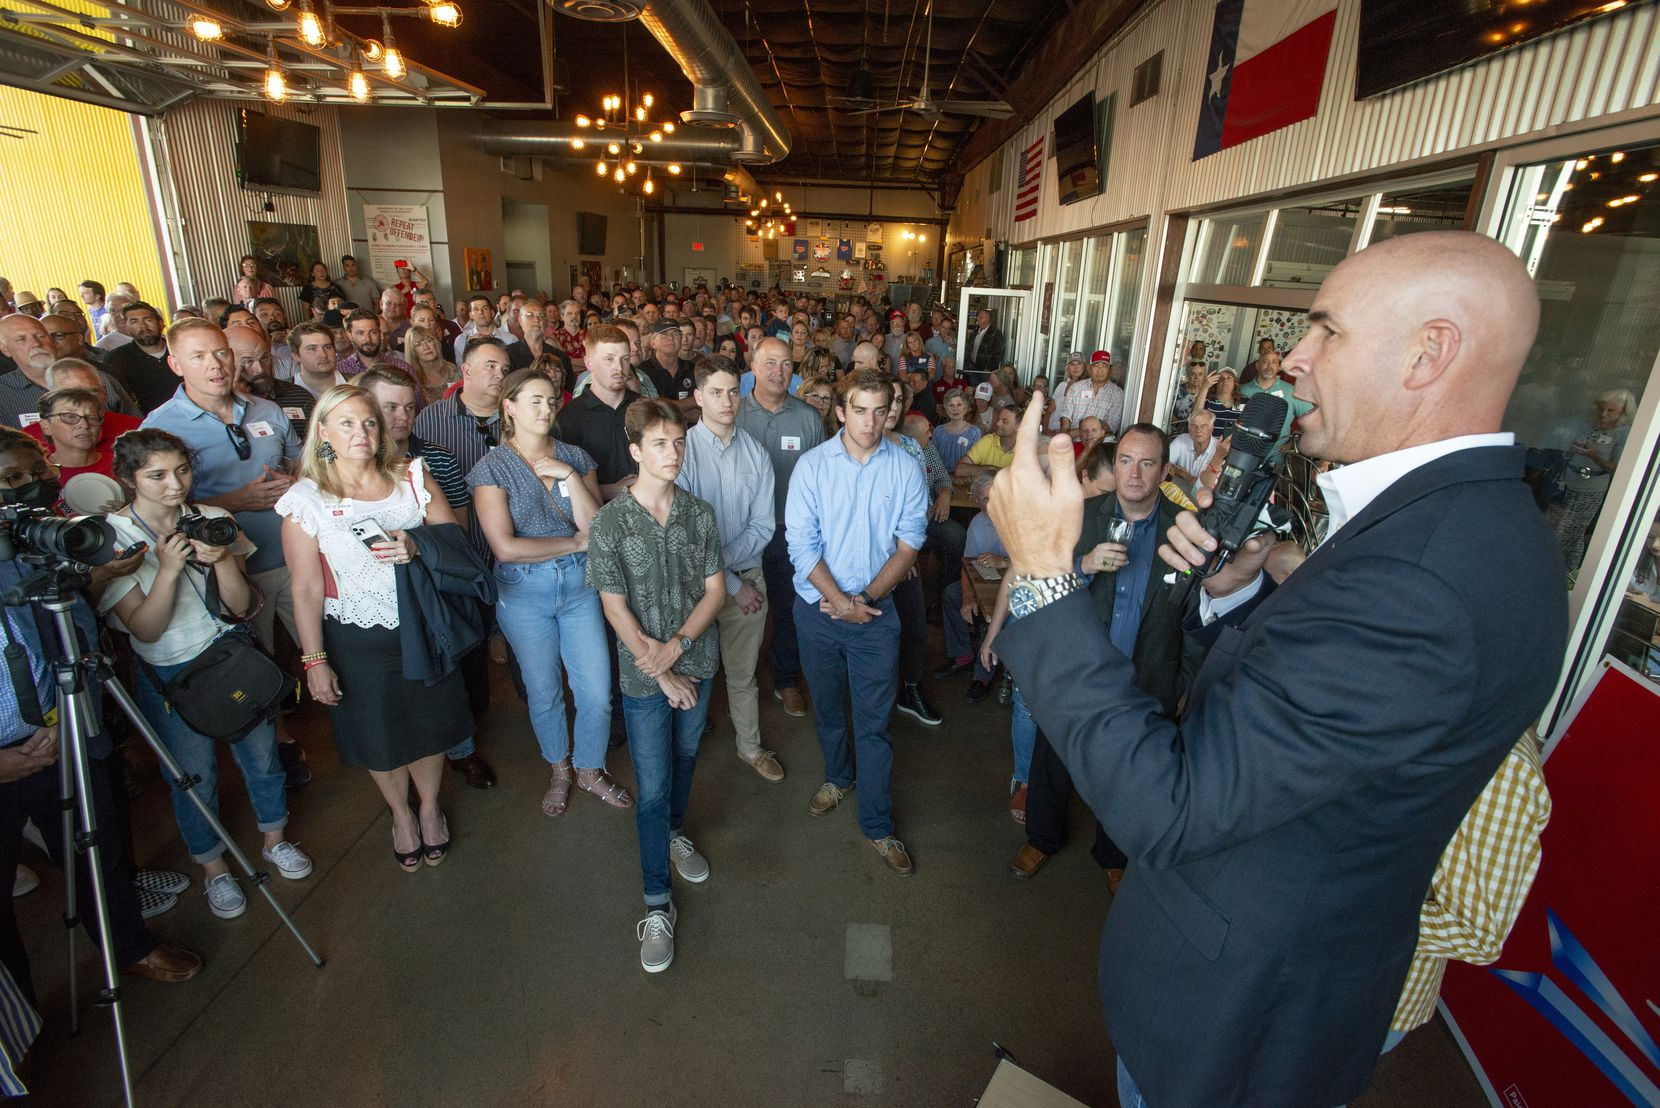 Congressional District 6 candidate Jake Ellzey speaks to supporters during an evening fundraiser at Legal Draft in Arlington, Texas on July 14,, 2021. (Robert W. Hart/Special Contributor)